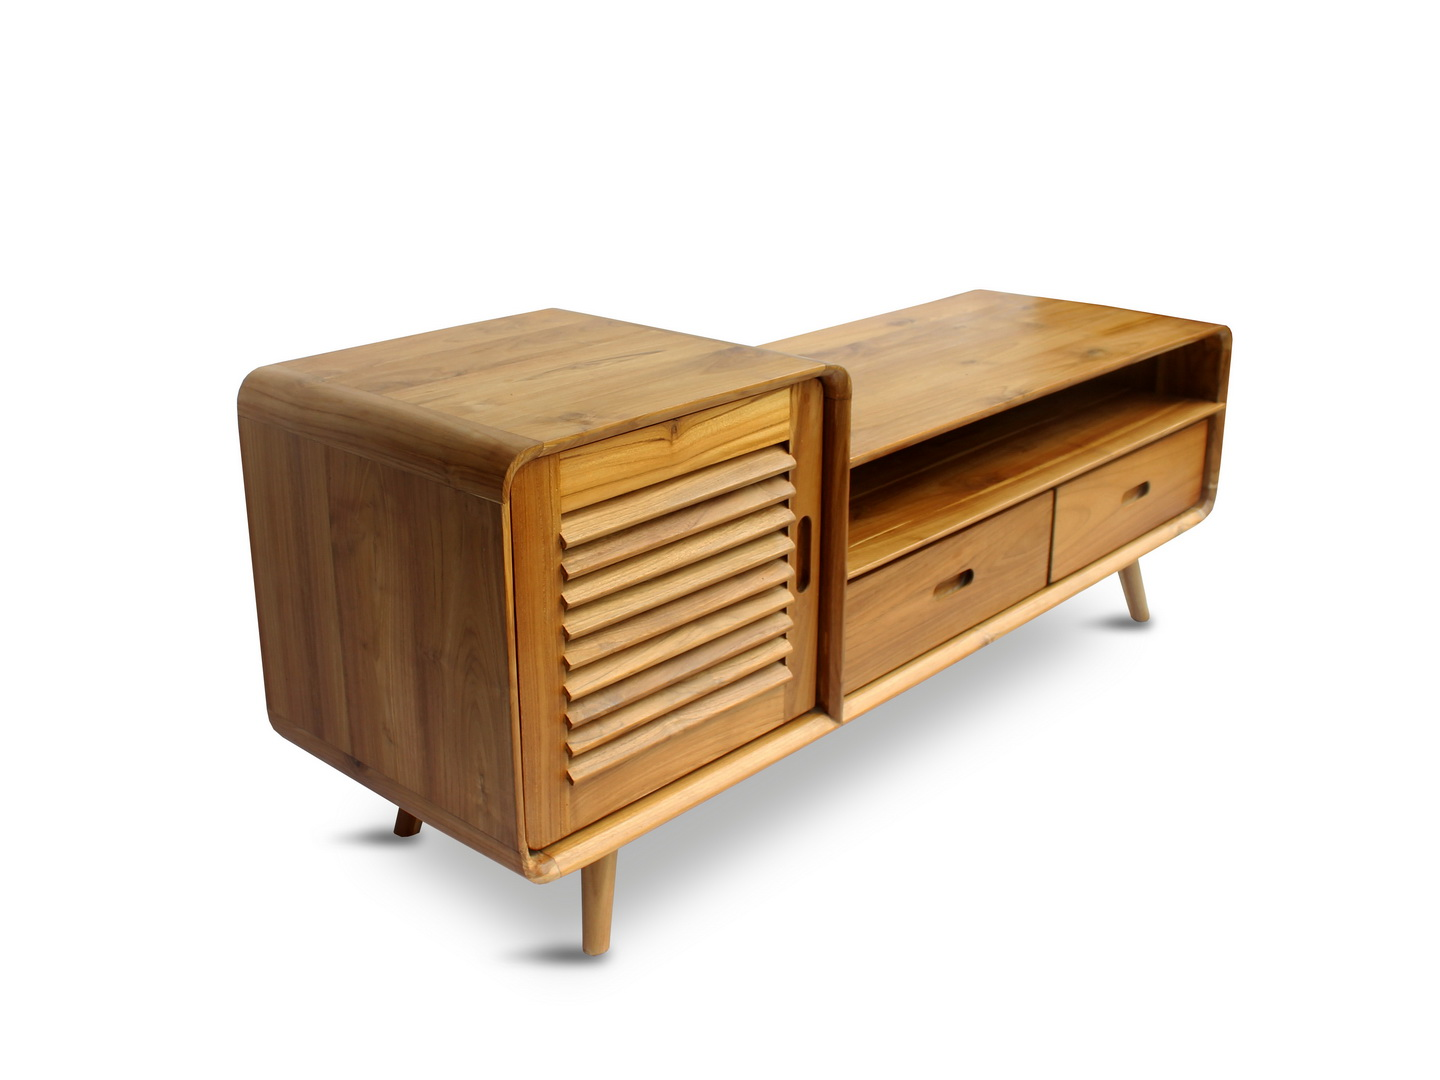 Rothbury_cabinet_1_door_2_drawers_02_yuni_bali_furniture_manufactuerer_exporter_jepara_teakwood_indonesia_shopping_showroom